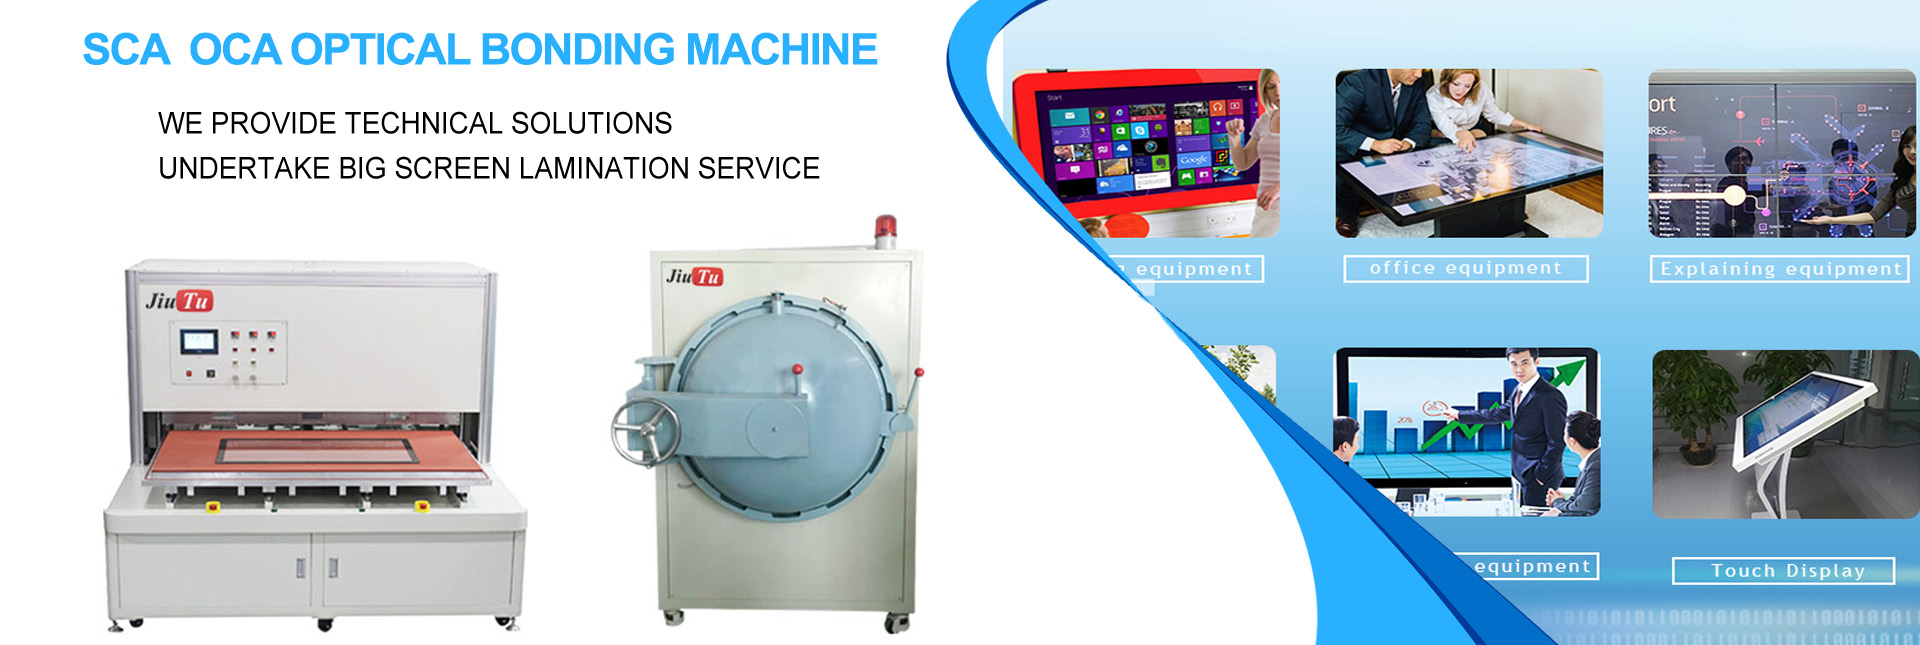 Optical Bonding Machine